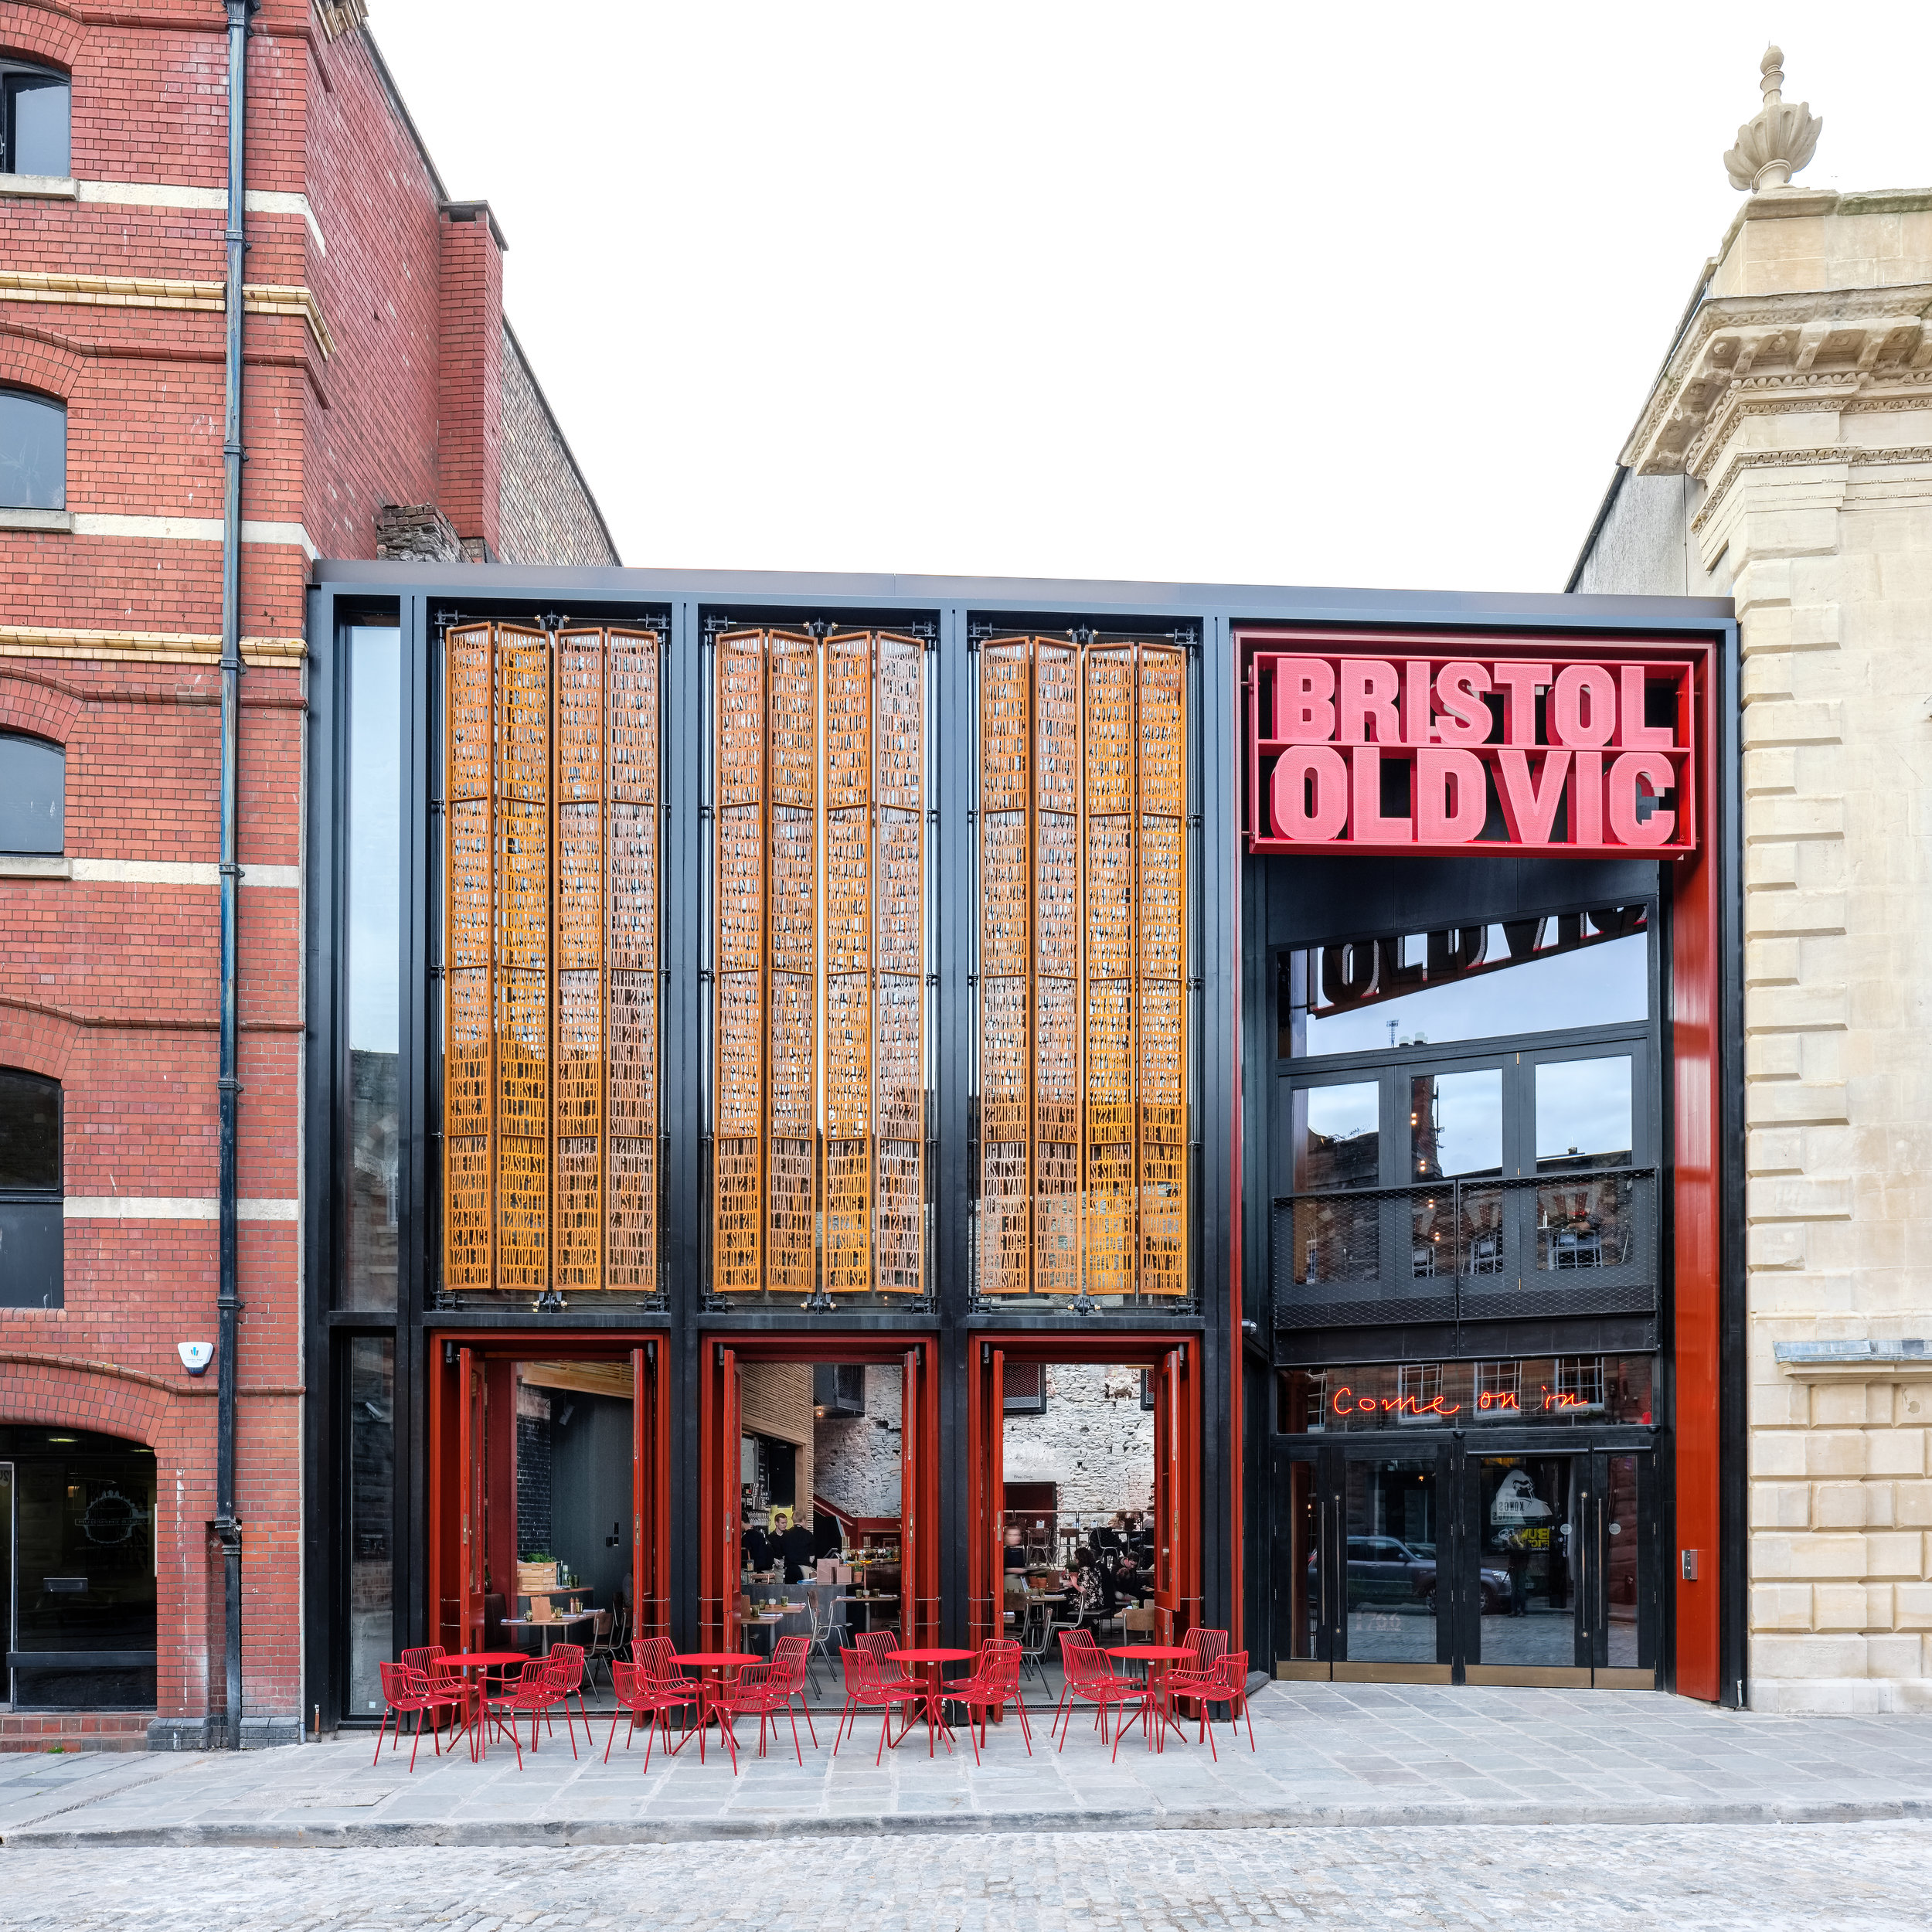 Fred+Howarth+Photography_Bristol+Old+Vic_01.jpg